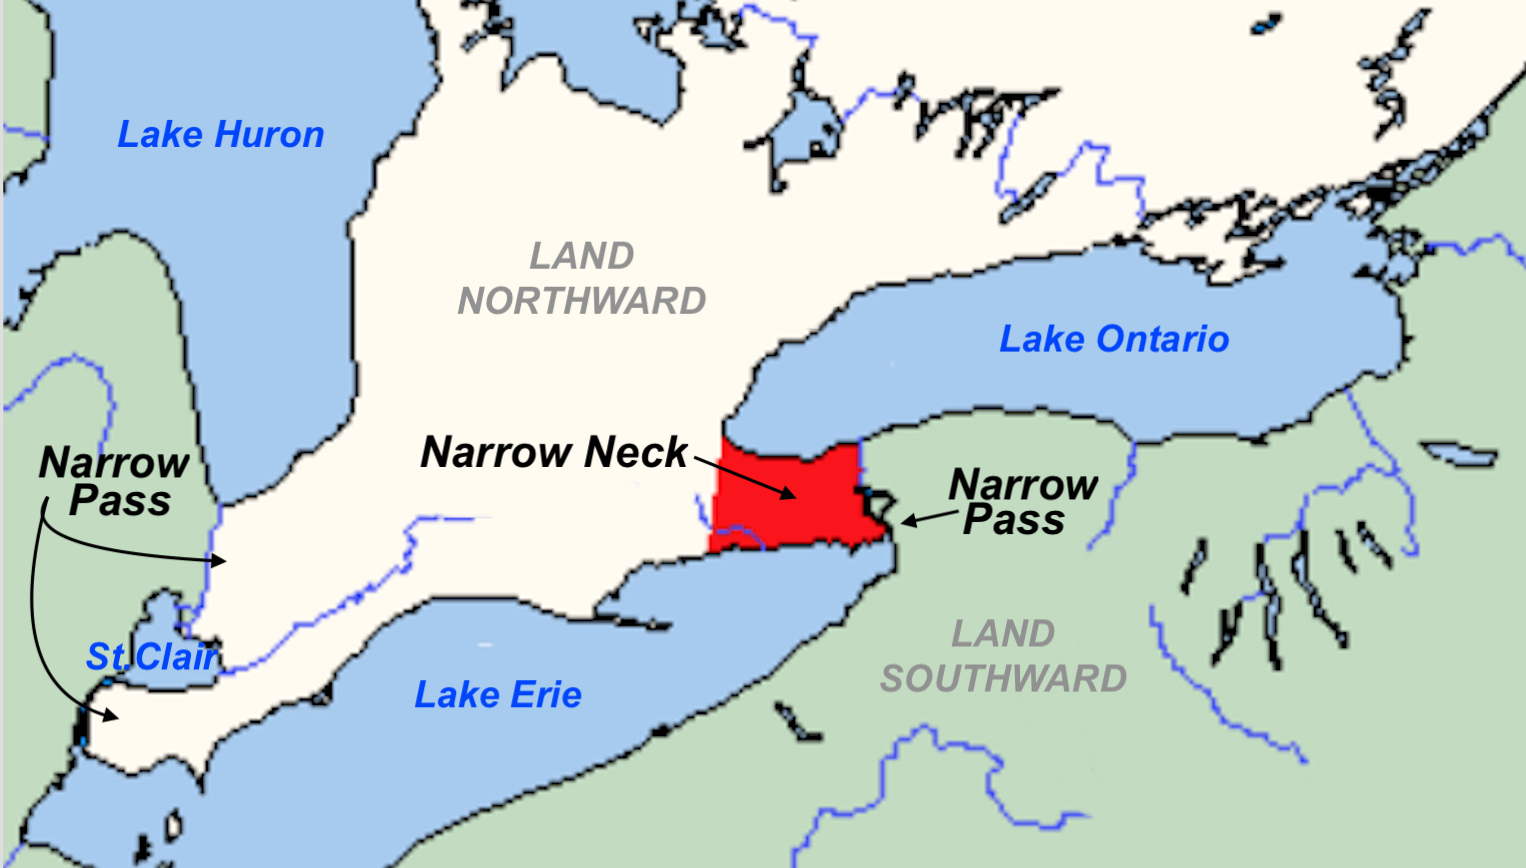 the great lake theorists red area narrow neck of land note that it runs east and west not north and south and that the seas about it are north and